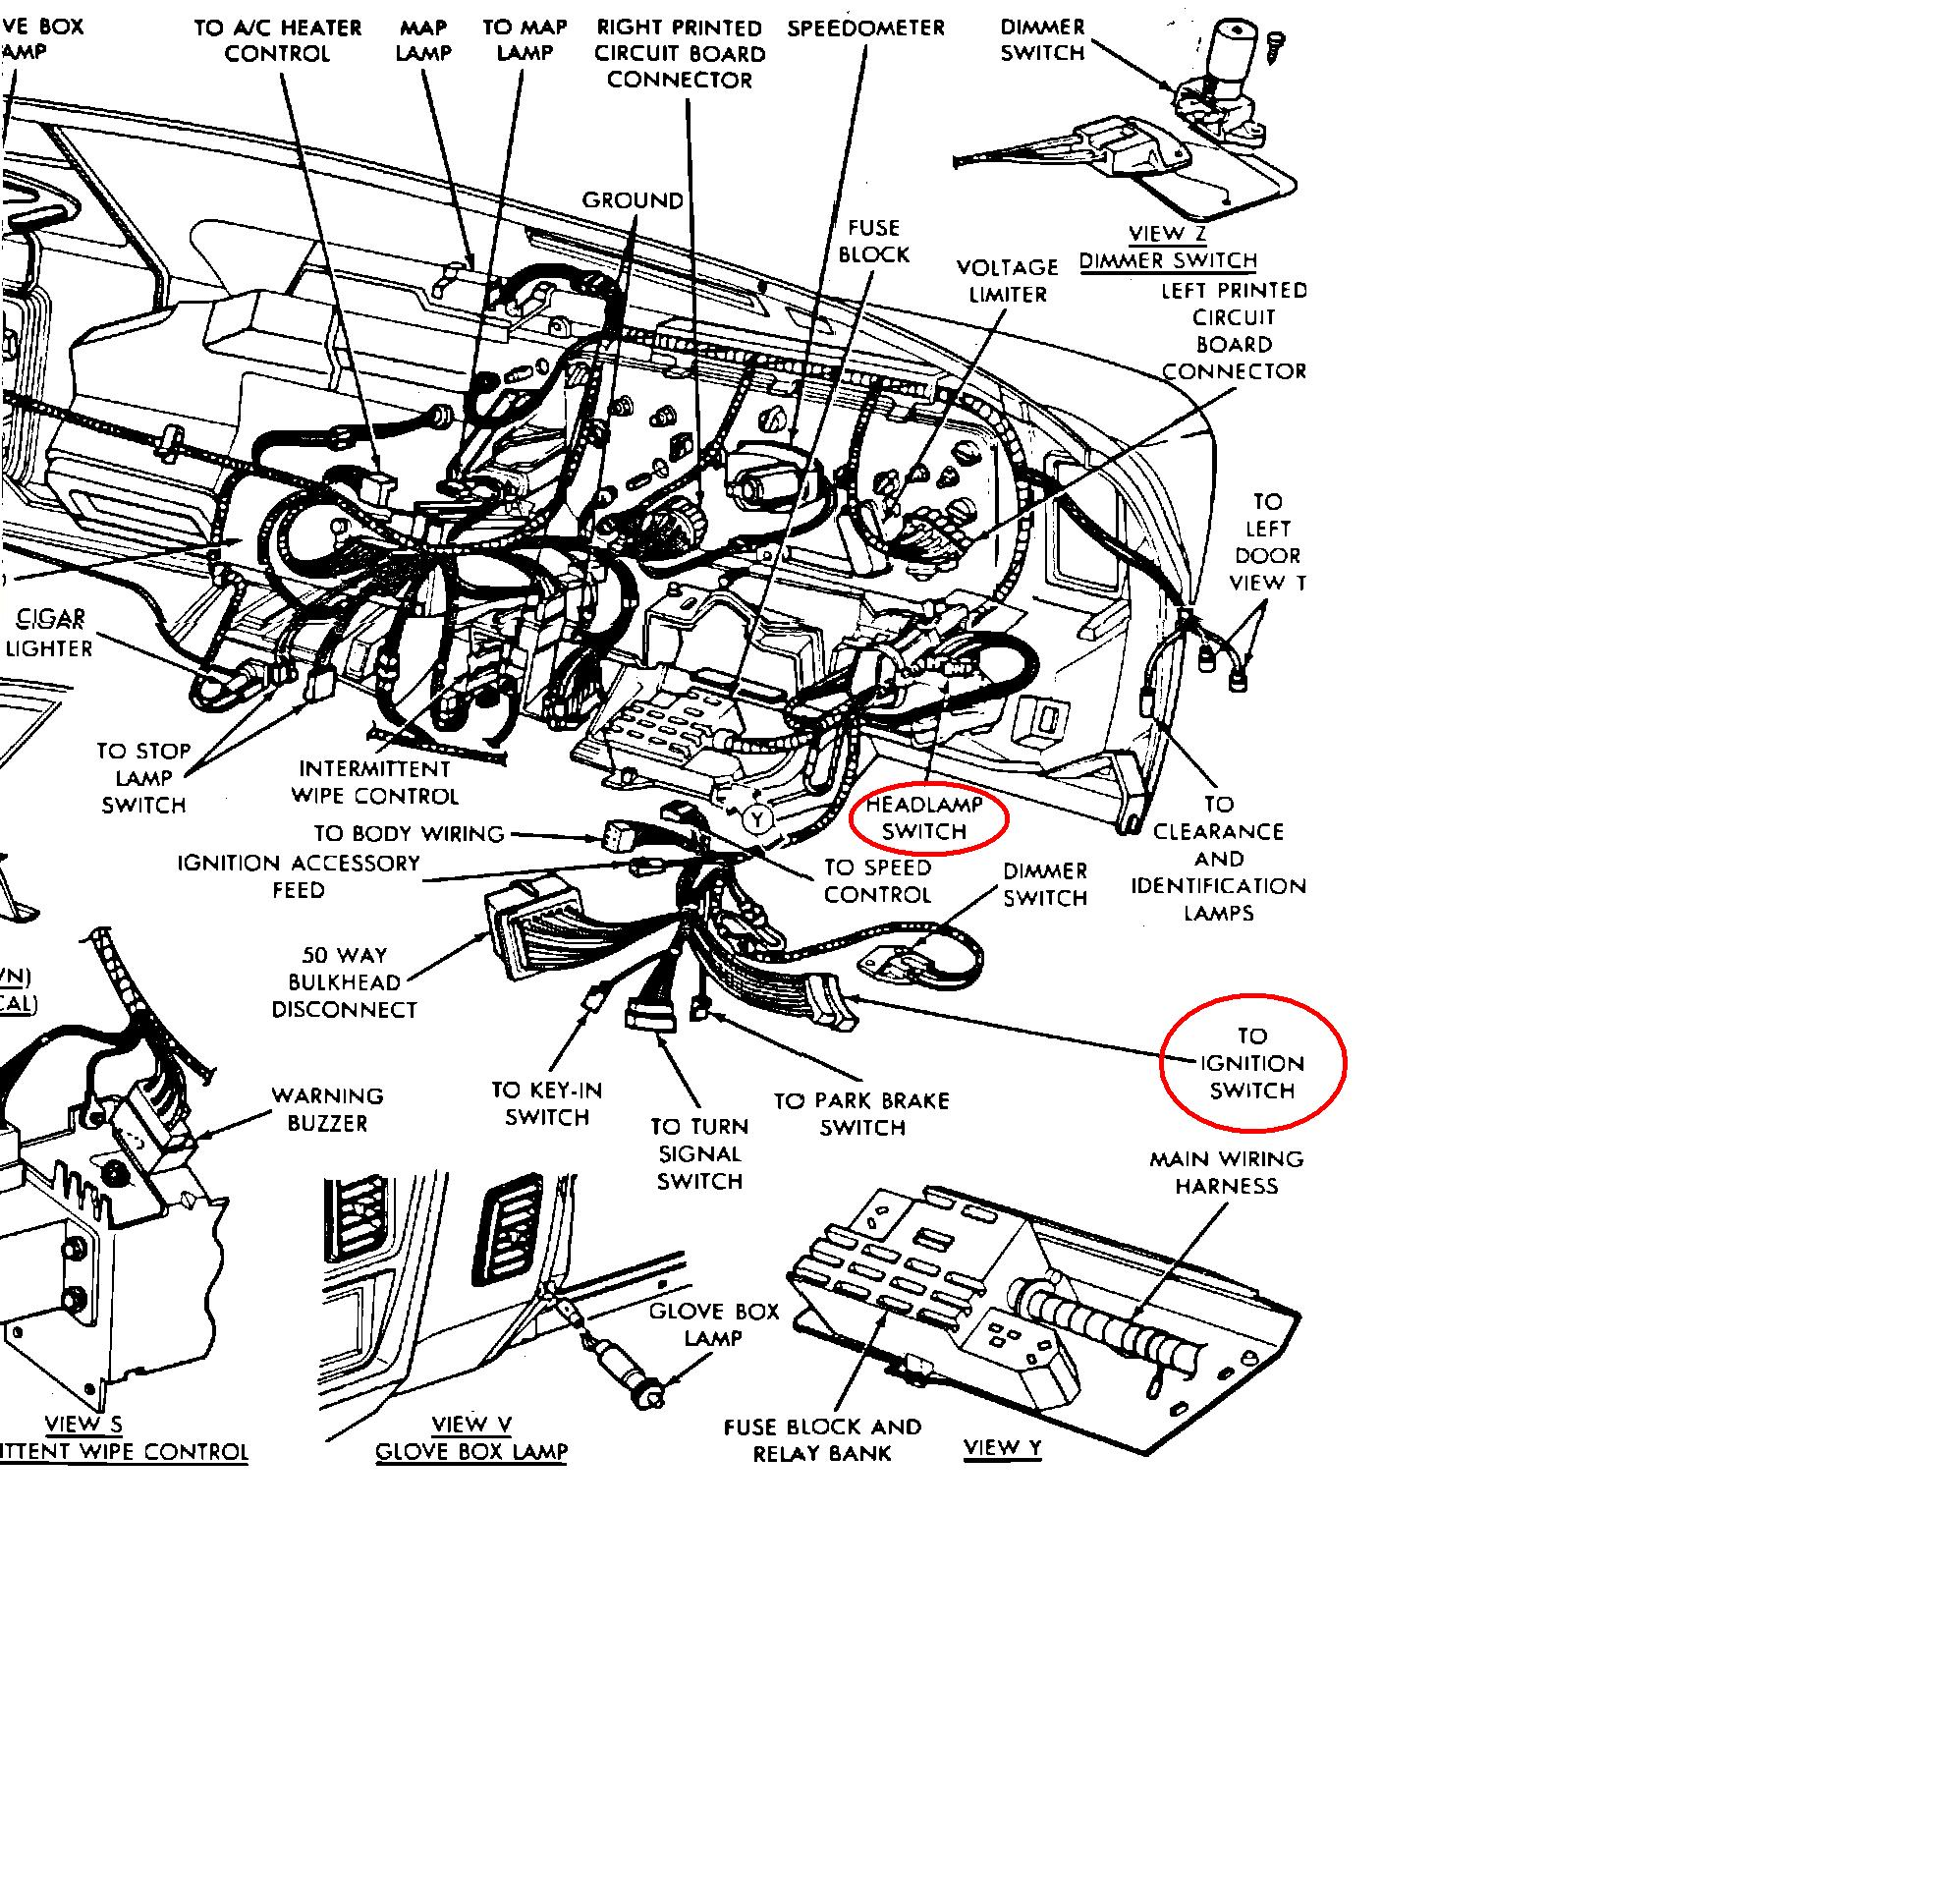 79 jeep cj7 alternator wiring diagram